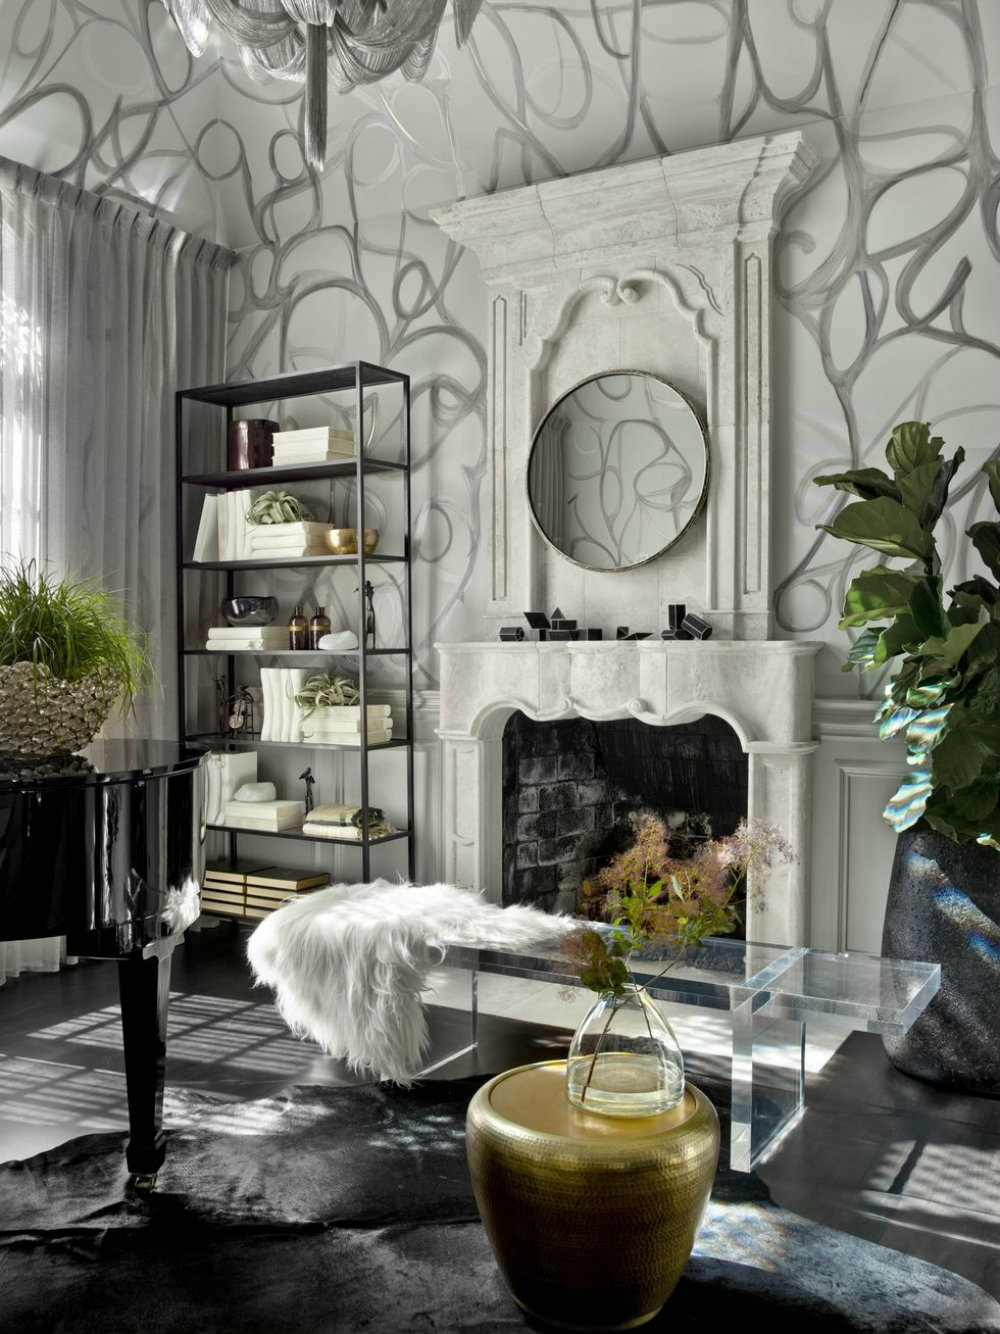 House Tour - A Glamorous and Edgy Chicago Home